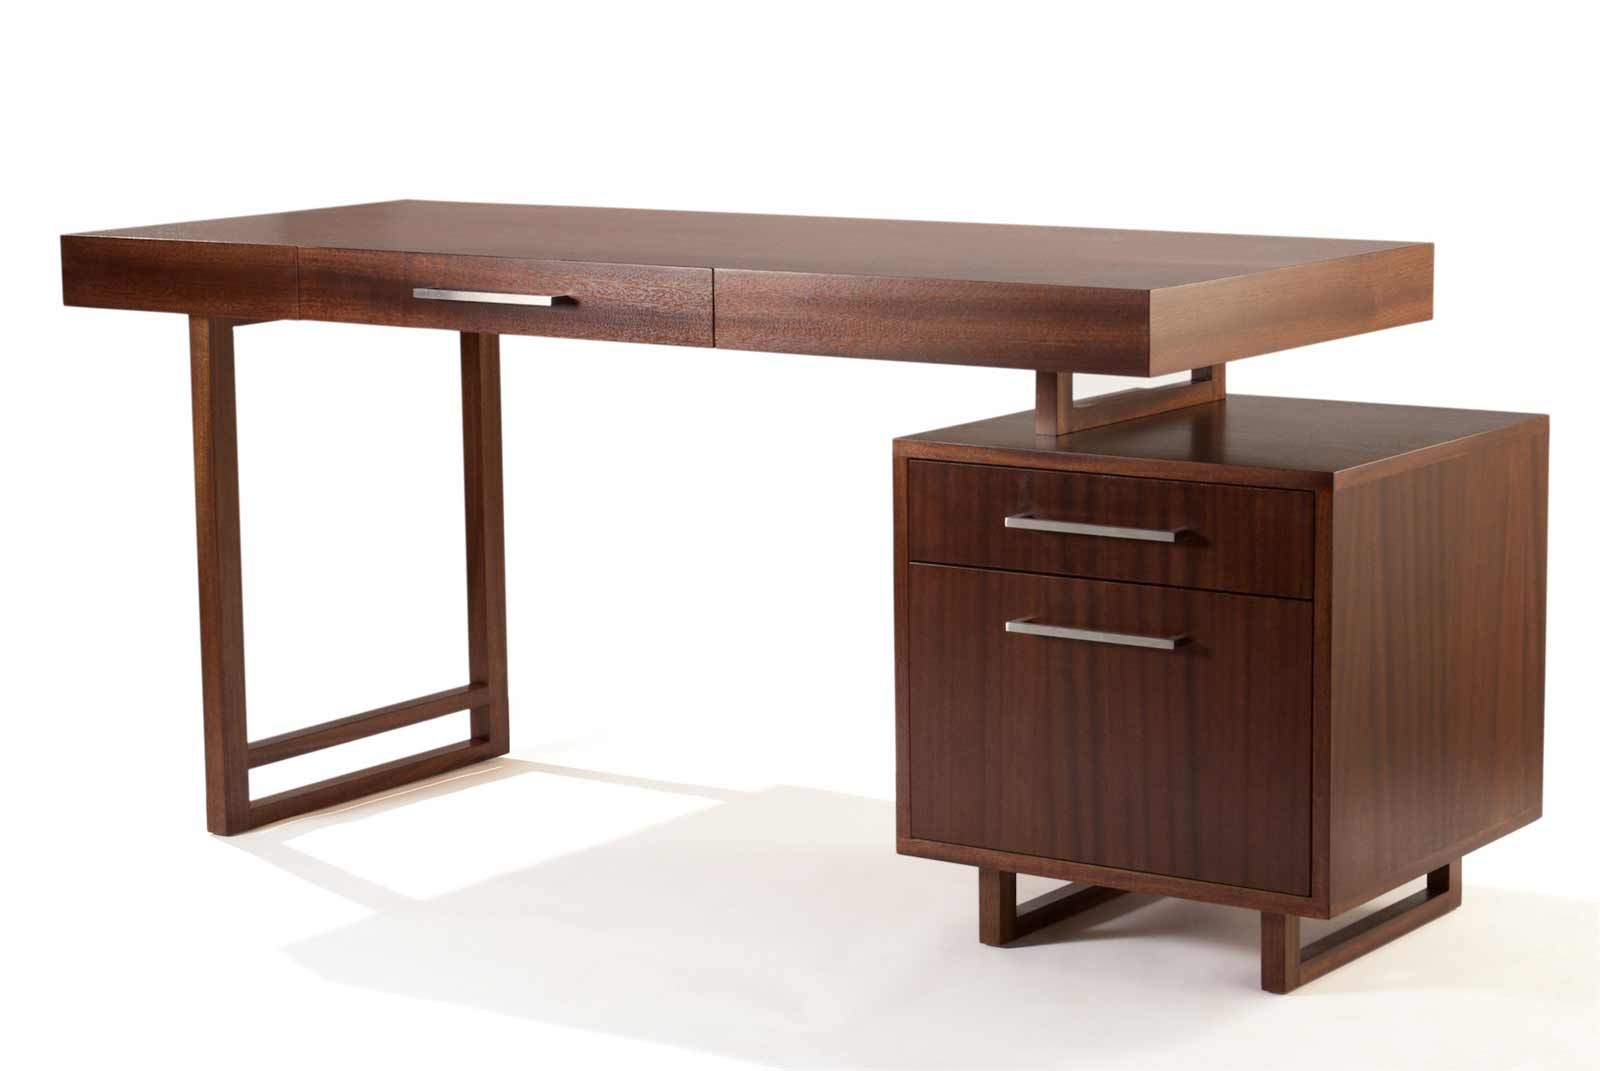 20 modern desk ideas for your home office | office desks, desks